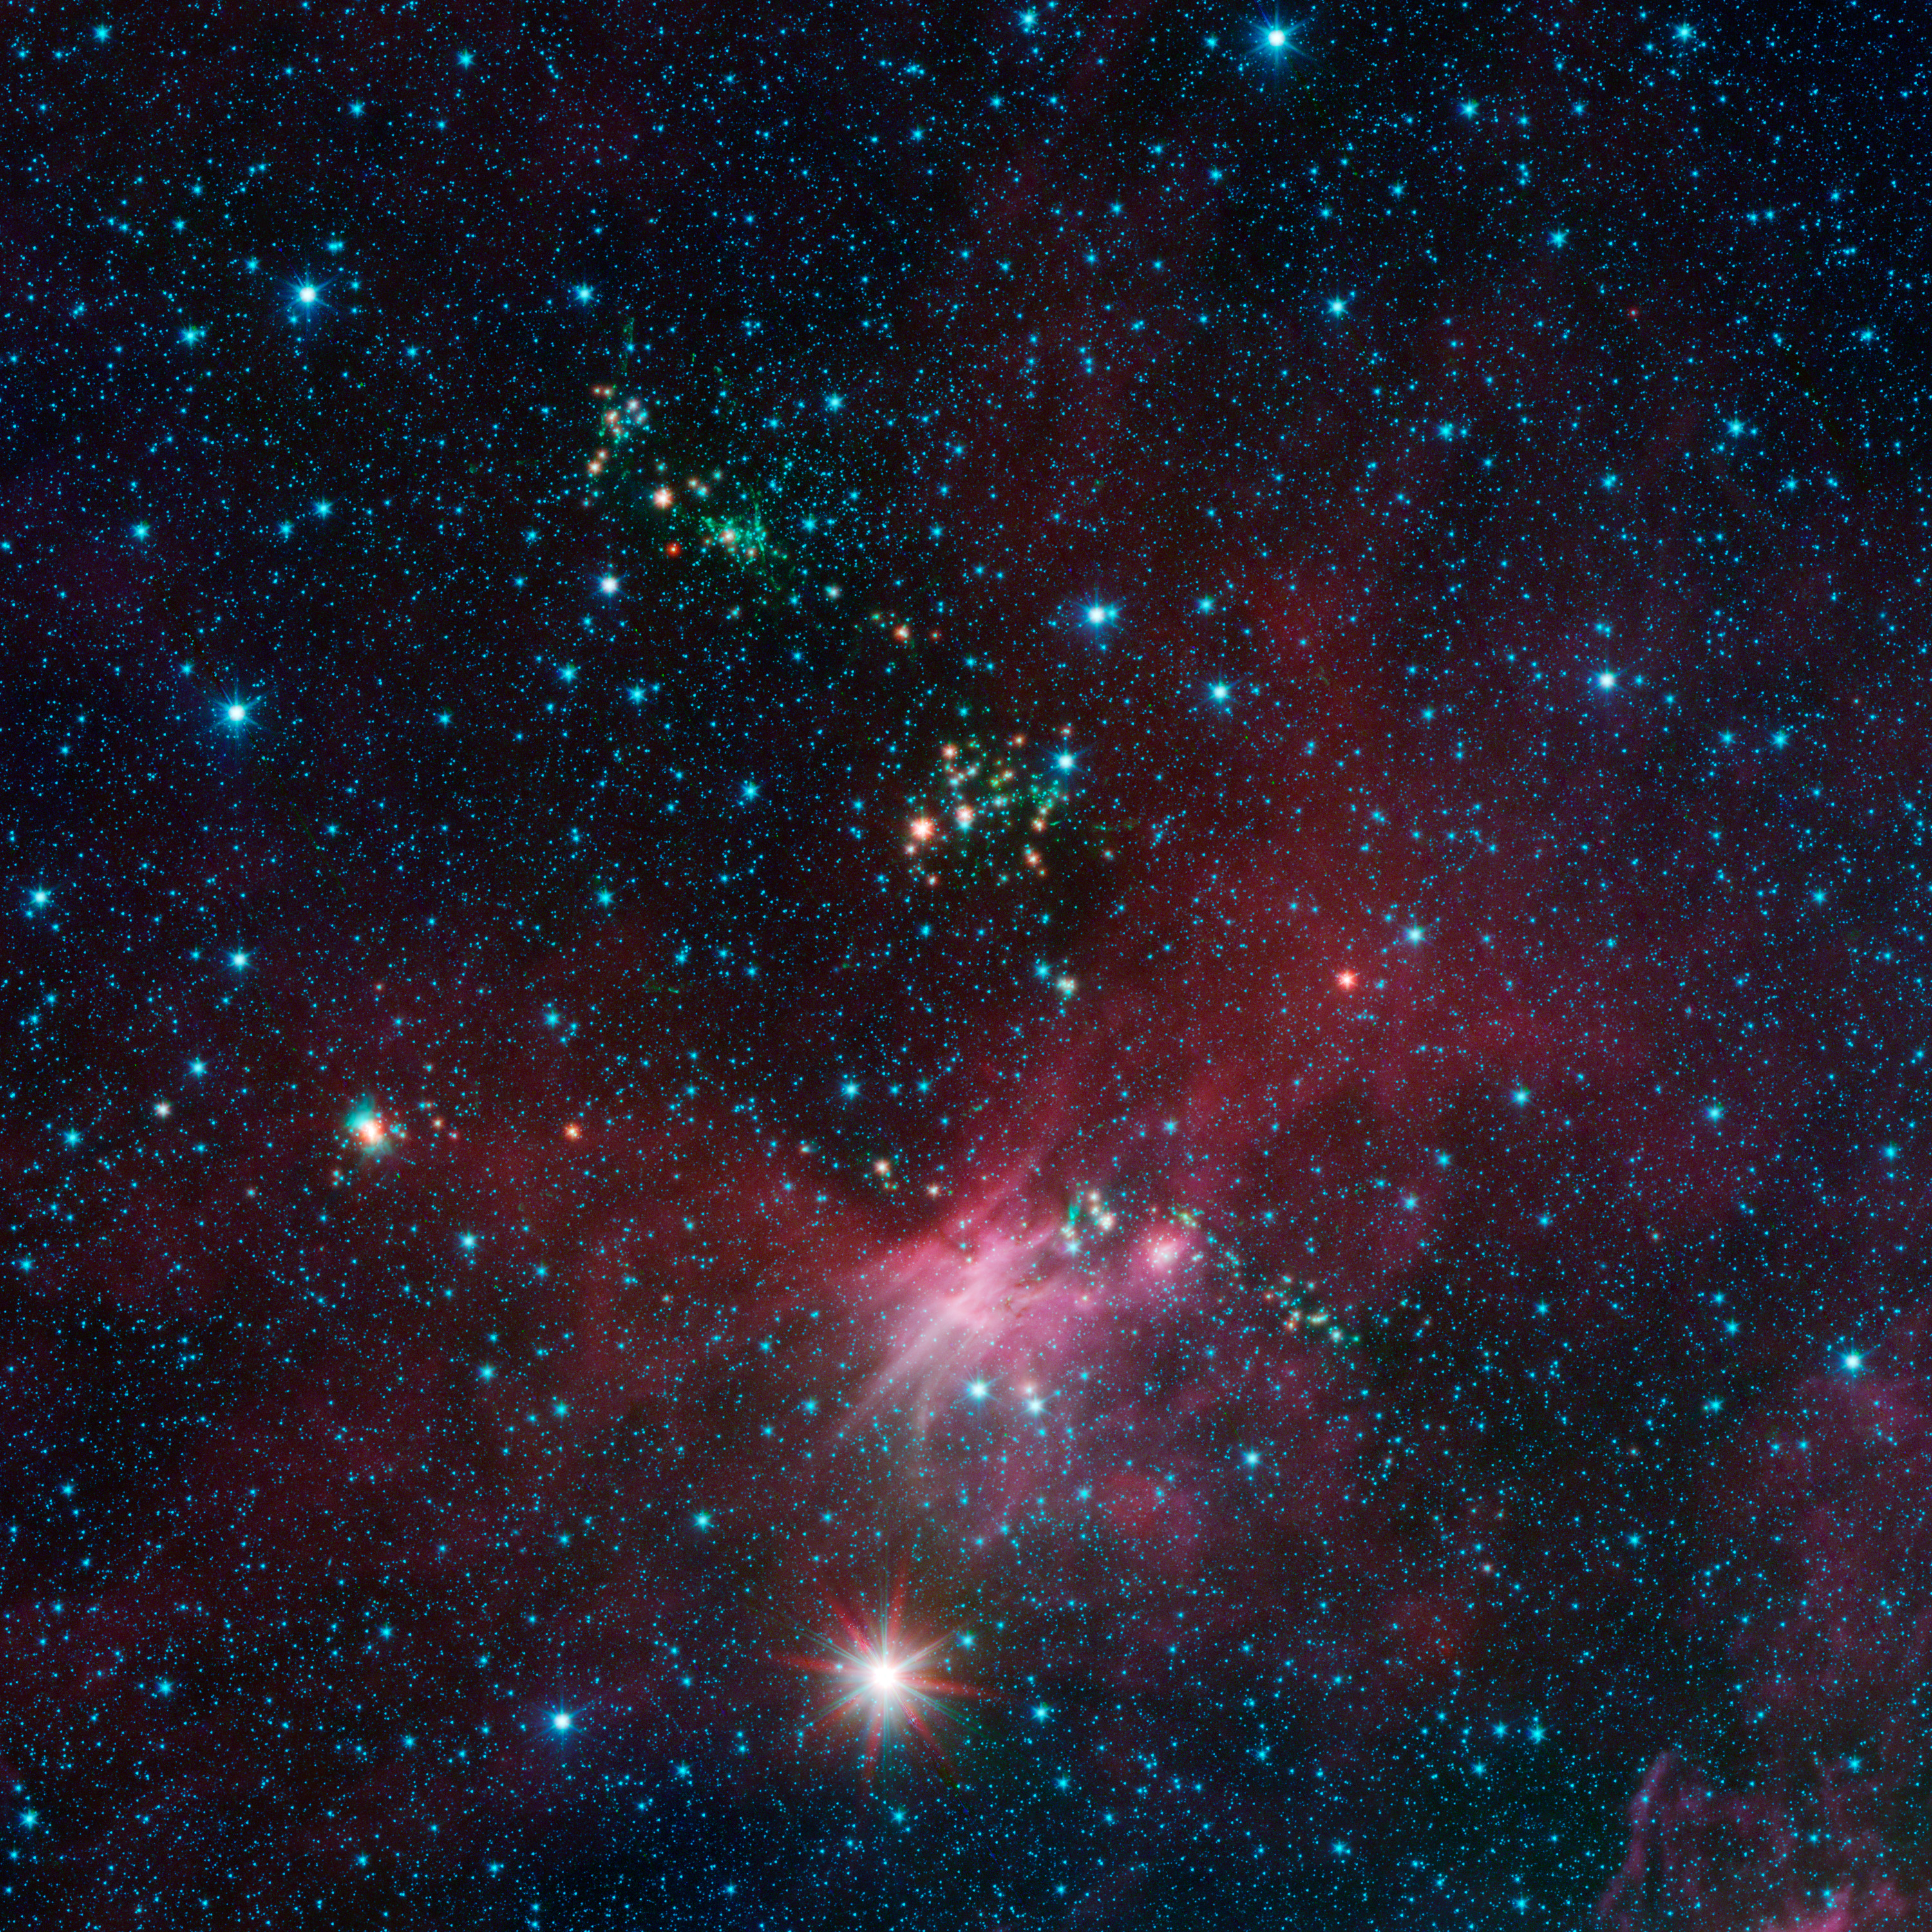 NASA - Stars Shoot Jets in Cosmic Playground